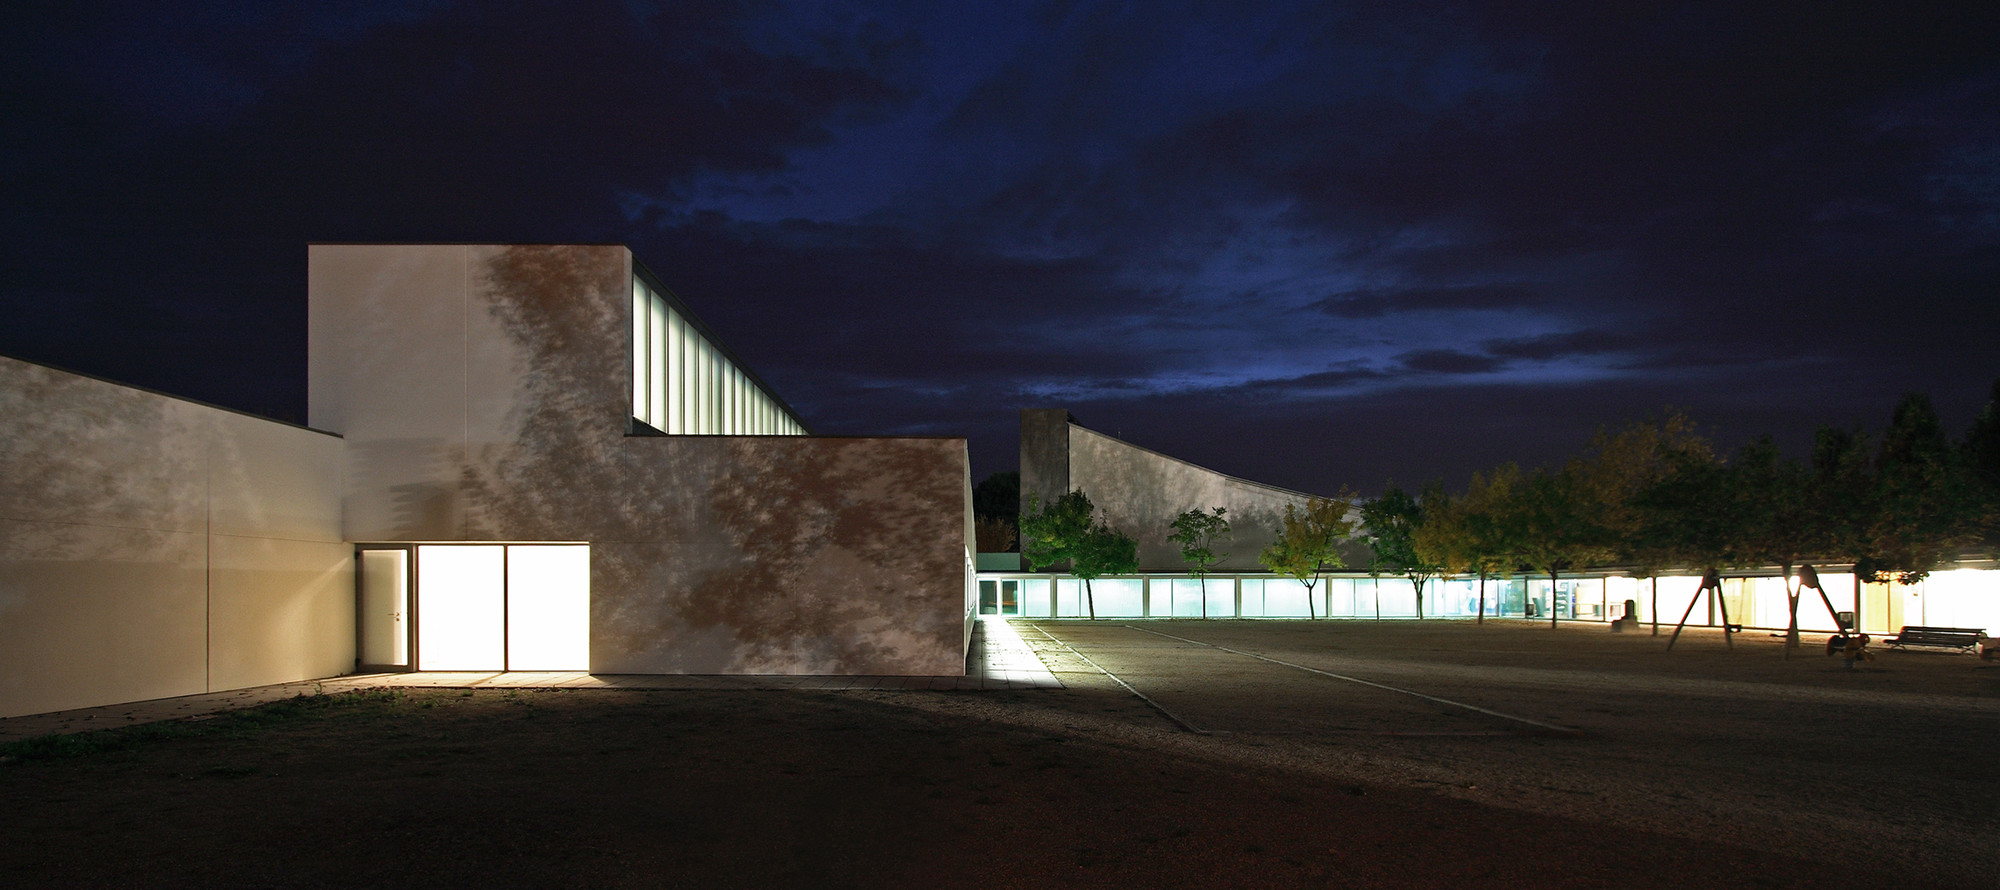 Extension And Renovation Works At The Social Center Mirasol / ONL Arquitectura